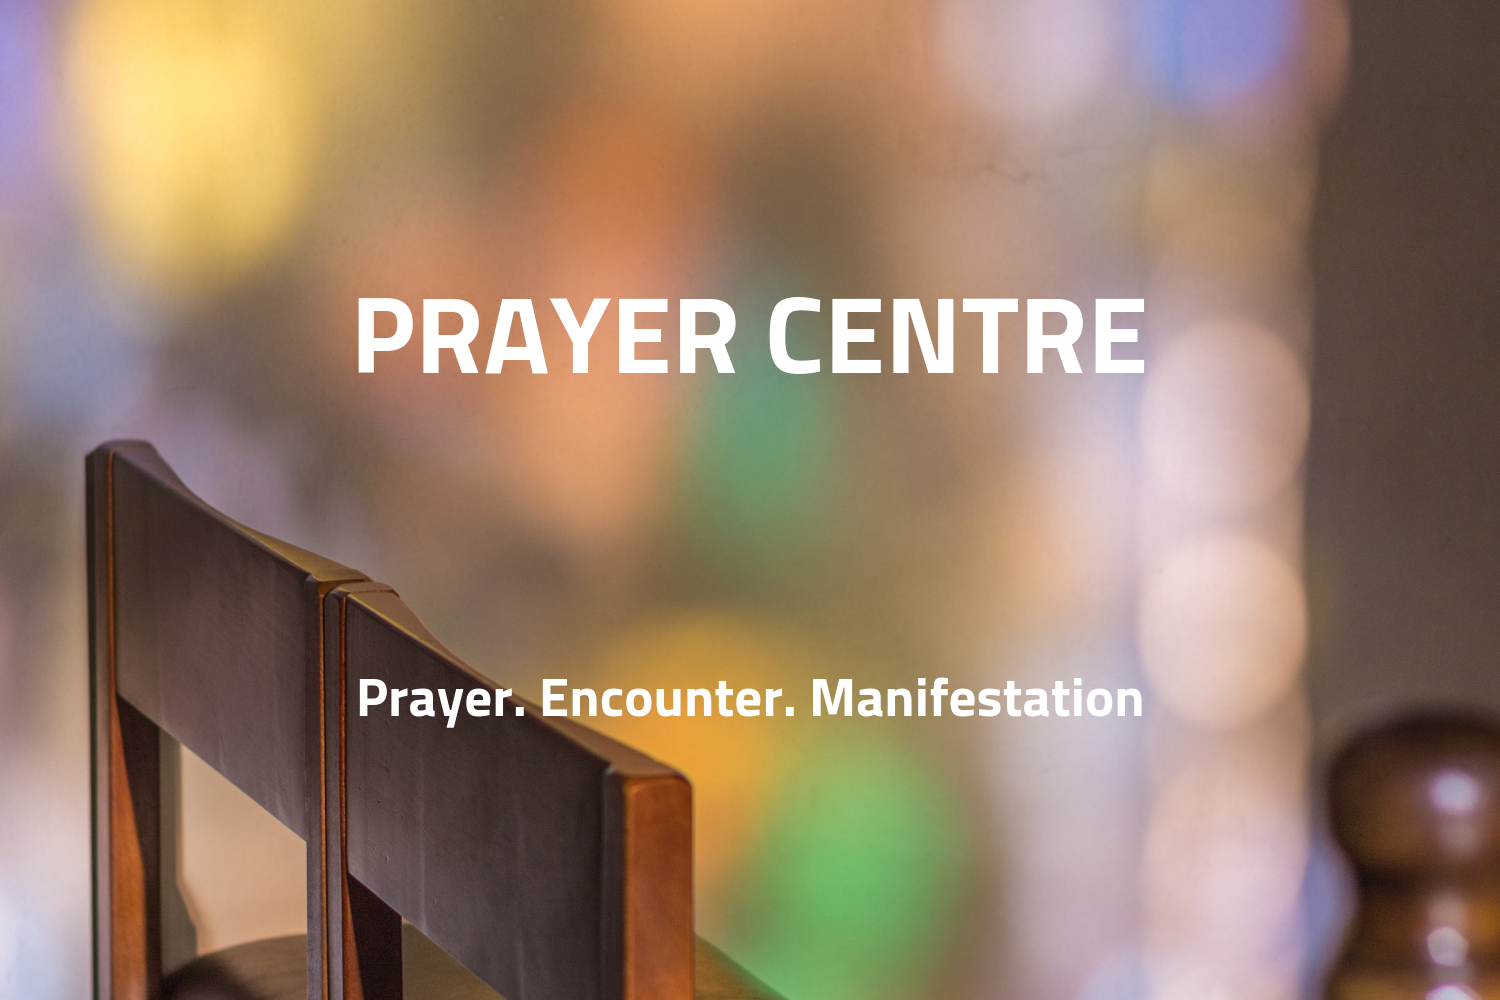 Prayer Centre